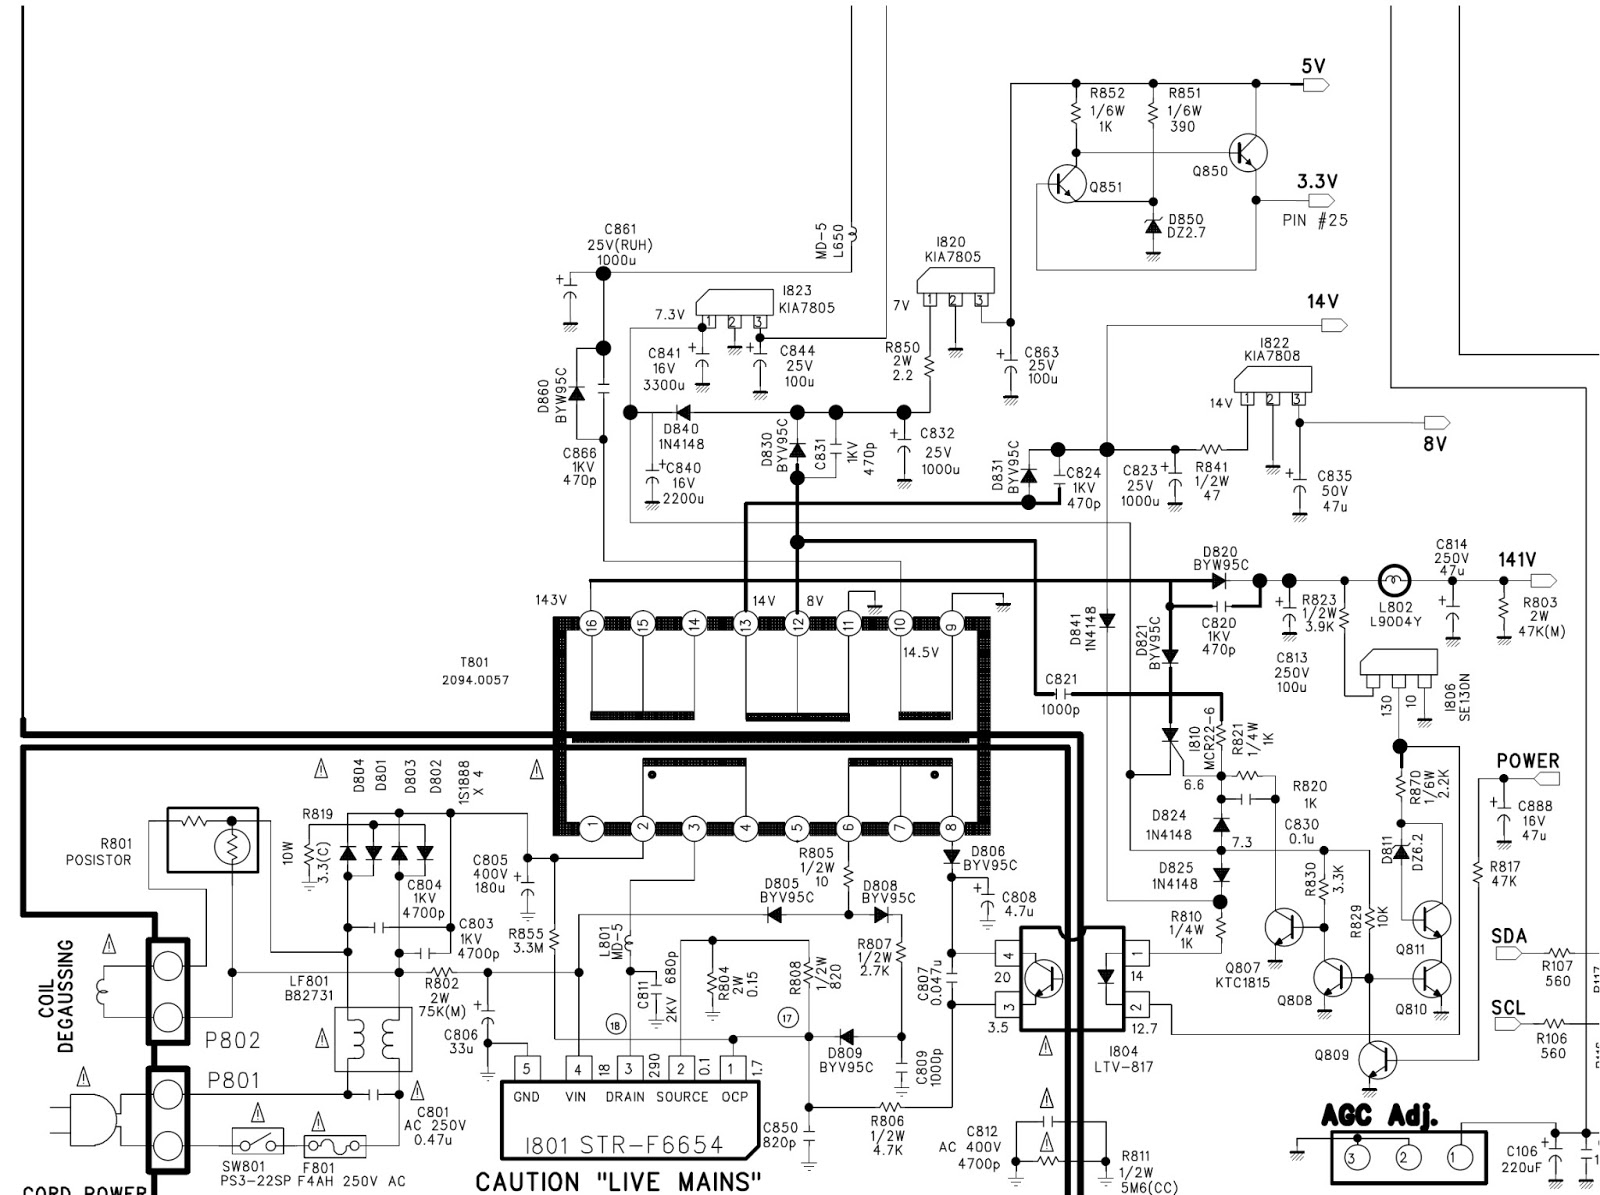 Str f6654 based smps power supply schematic diagram daewoo dsc str f6654 based smps power supply schematic diagram daewoo dsc 3210 tv based circuit cheapraybanclubmaster